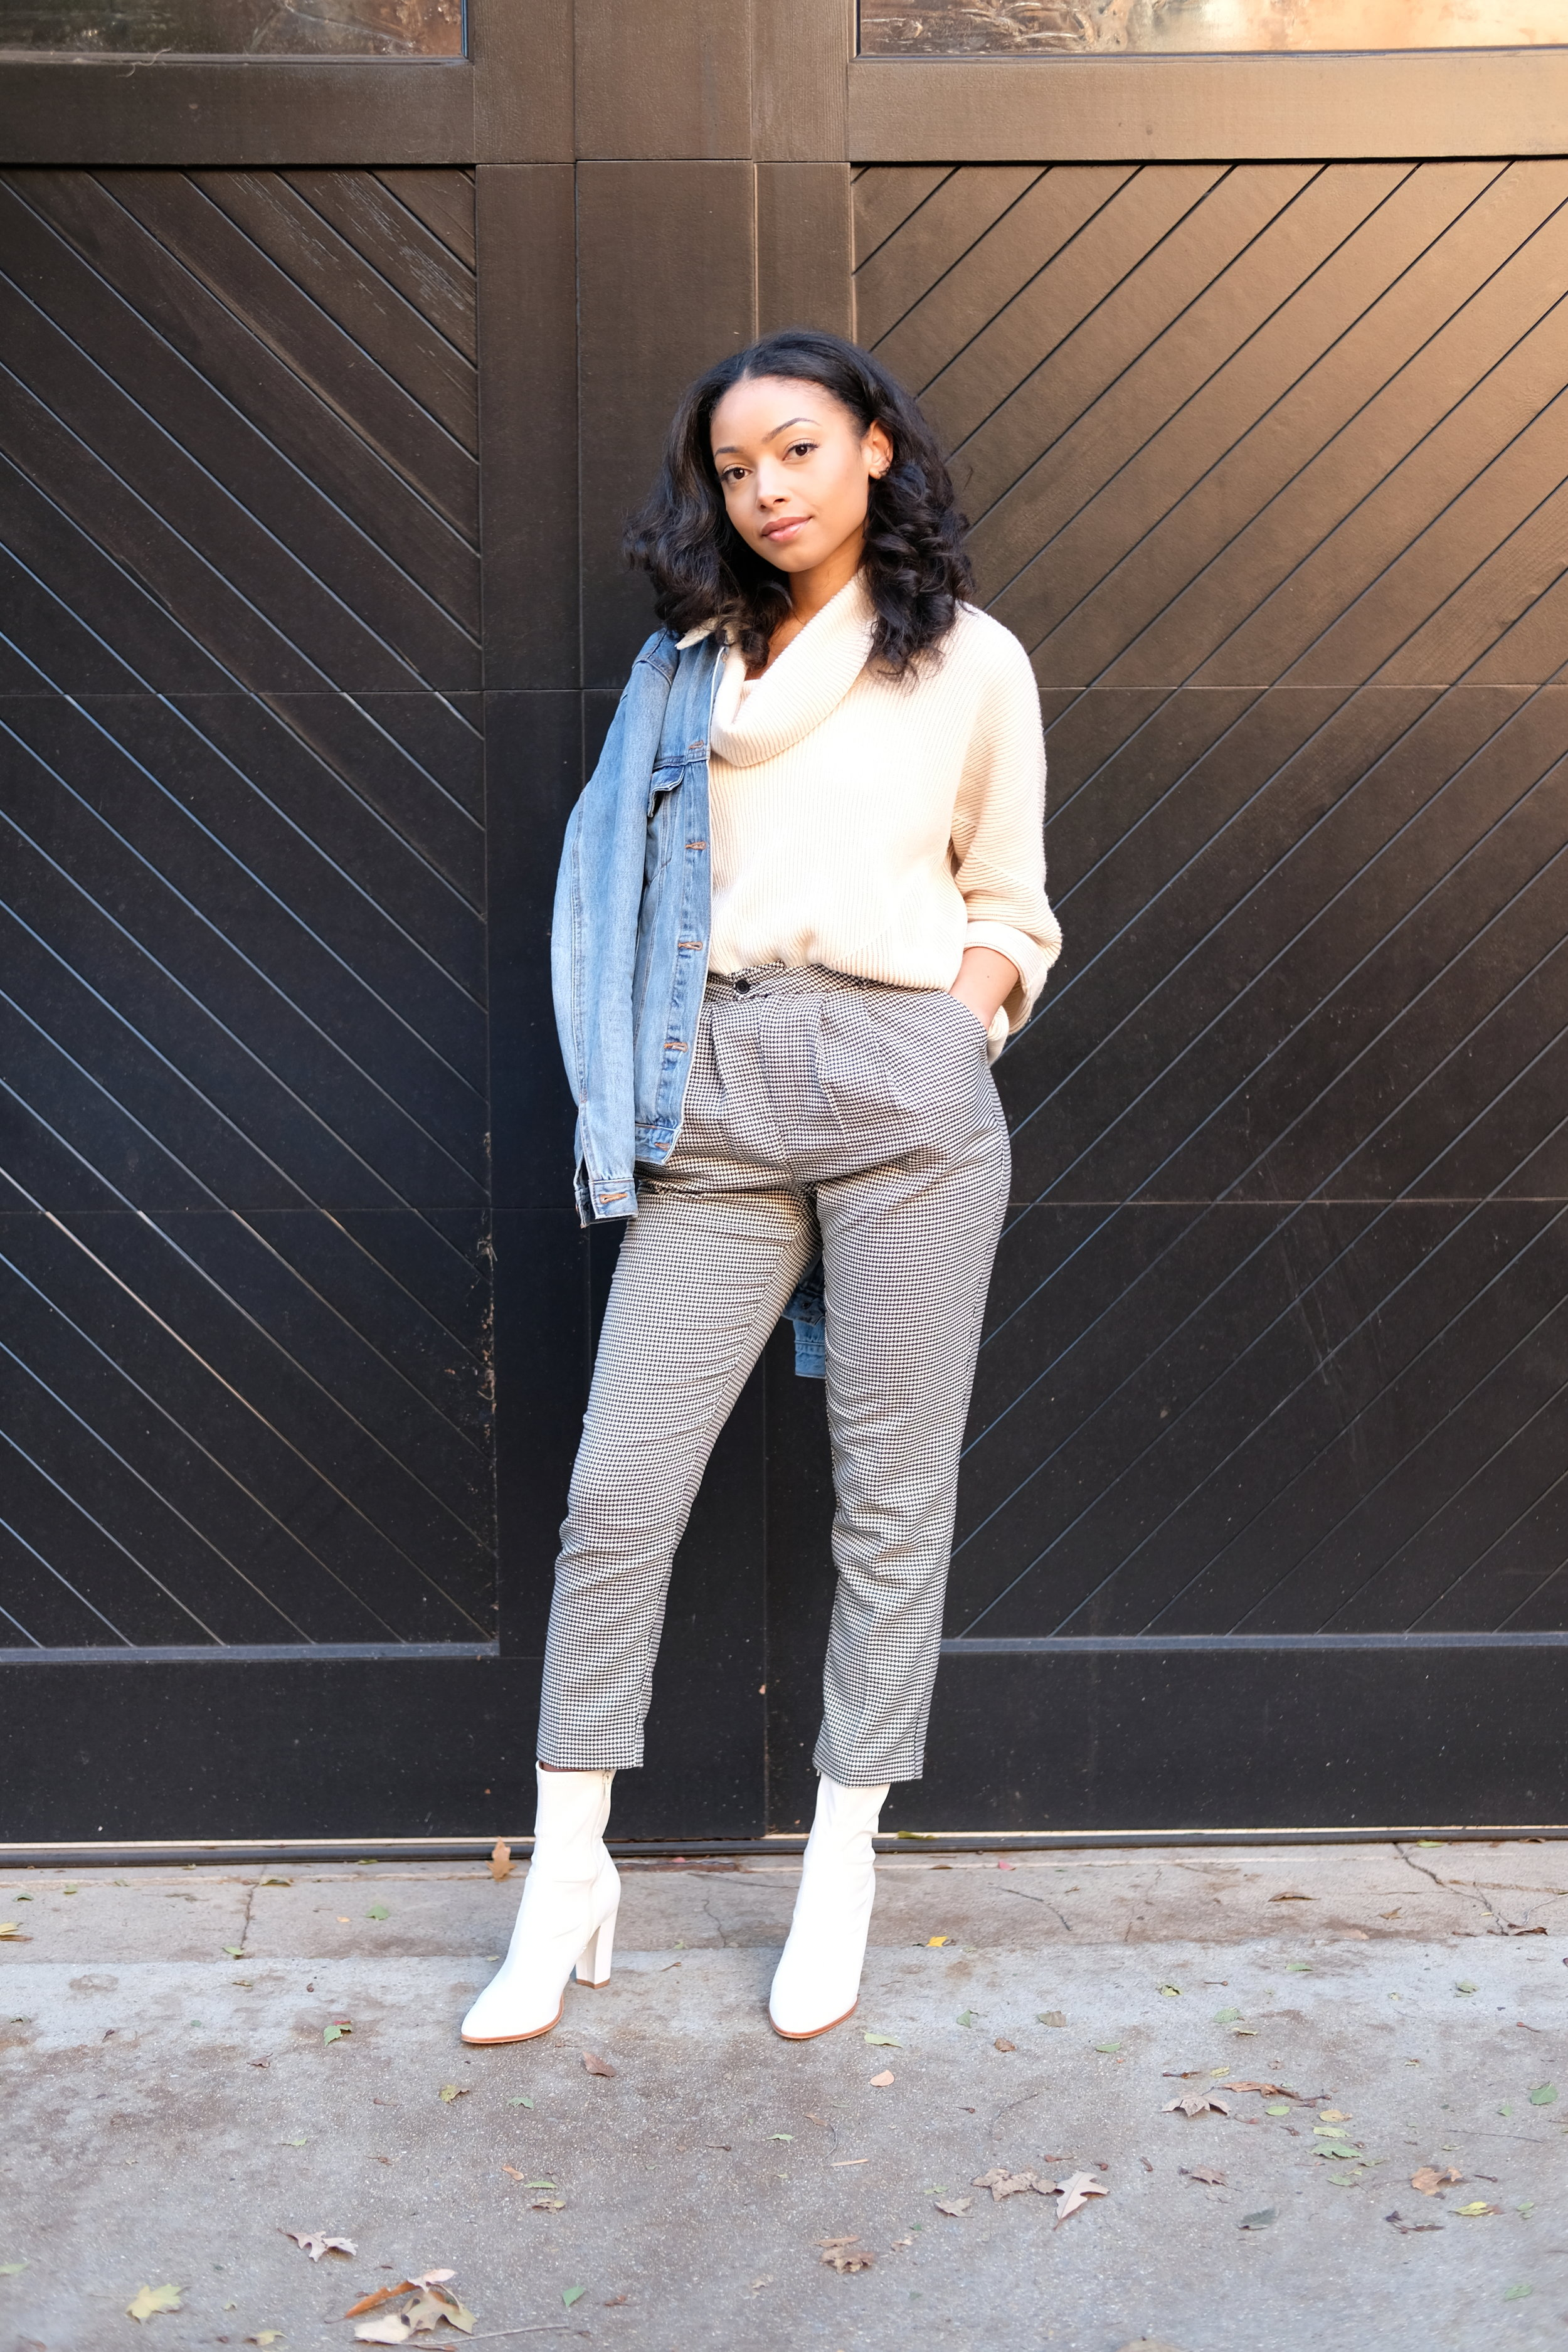 - Outfit Details:Sweater: TJ Maxx; similar style from Target; similar style from H&MPants: Forever 21Jacket: Forever 21; similar style from H&M; similar style from TopShopBoots: TJ Maxx; similar style from Steve Madden; similar style from Express